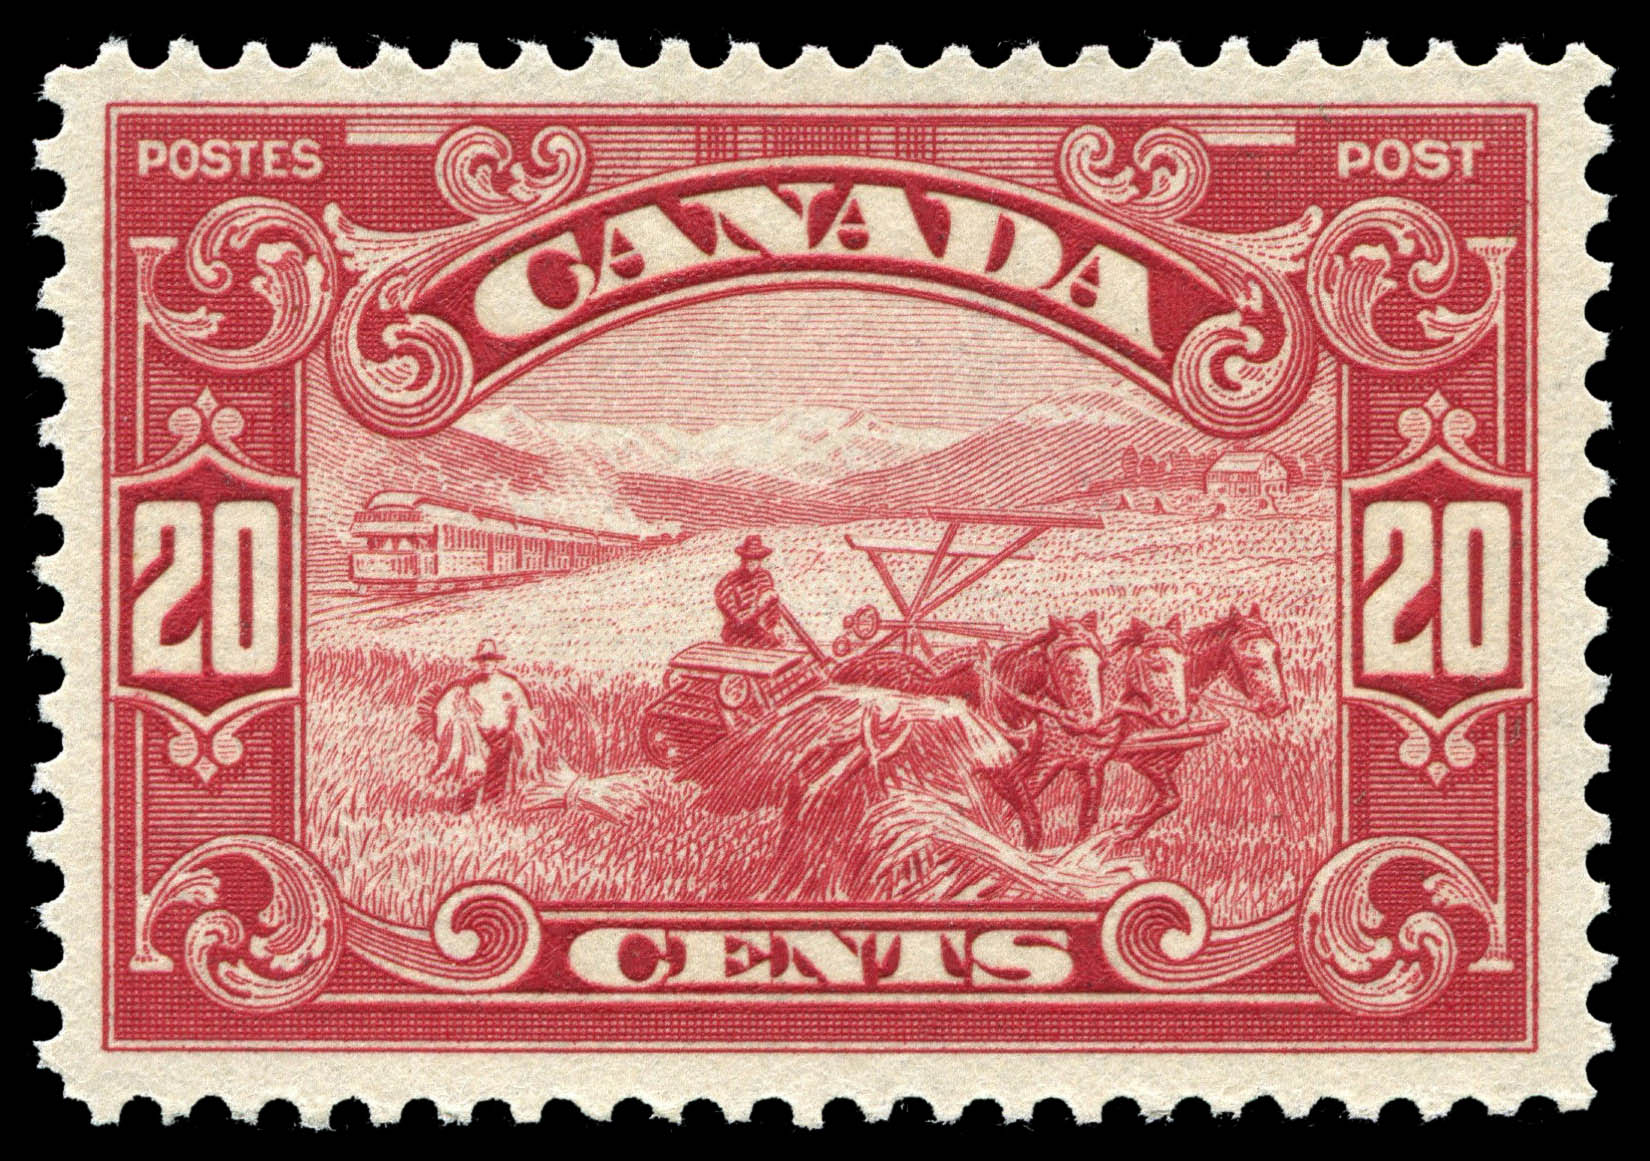 Harvesting Wheat  Canada Postage Stamp